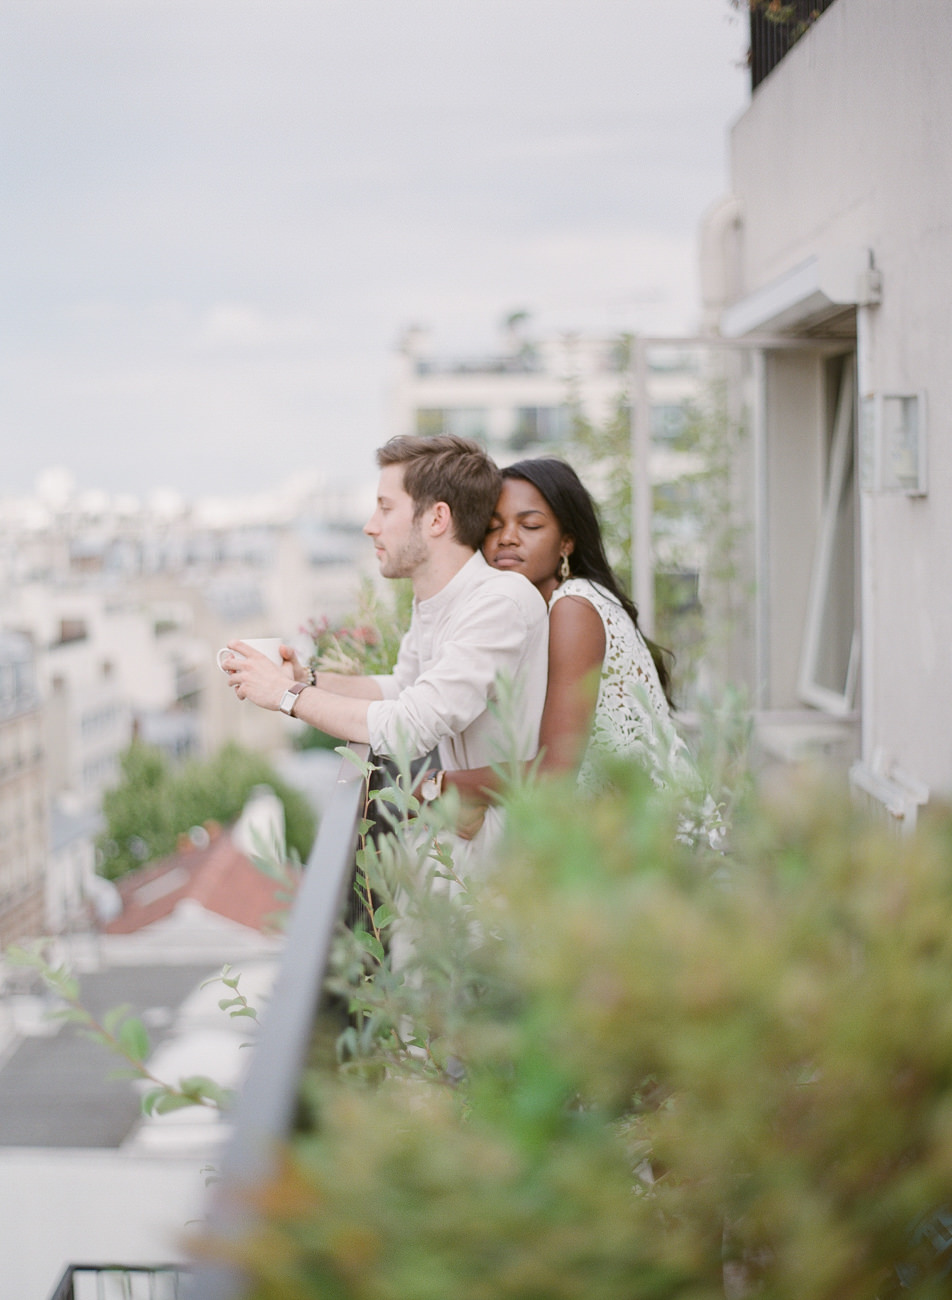 engagement-paris-photographe-mariage-alain-m-8.jpg